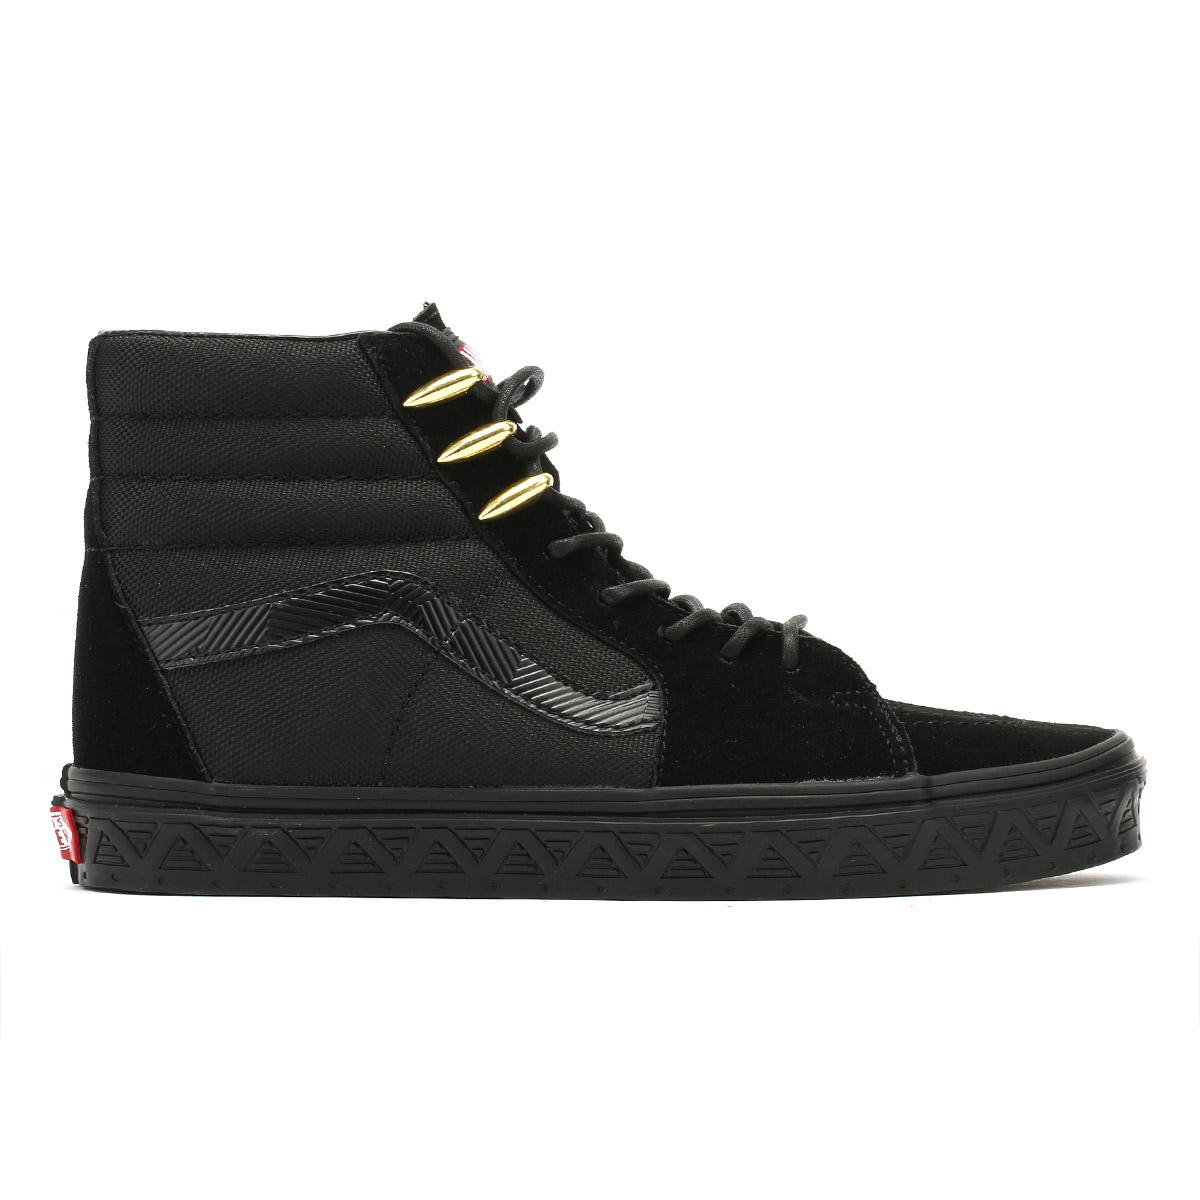 8556e8f62dc5 Vans Unisex Trainers Marvel Black Panther SK8-Hi Lace Up Skate Casual Shoes